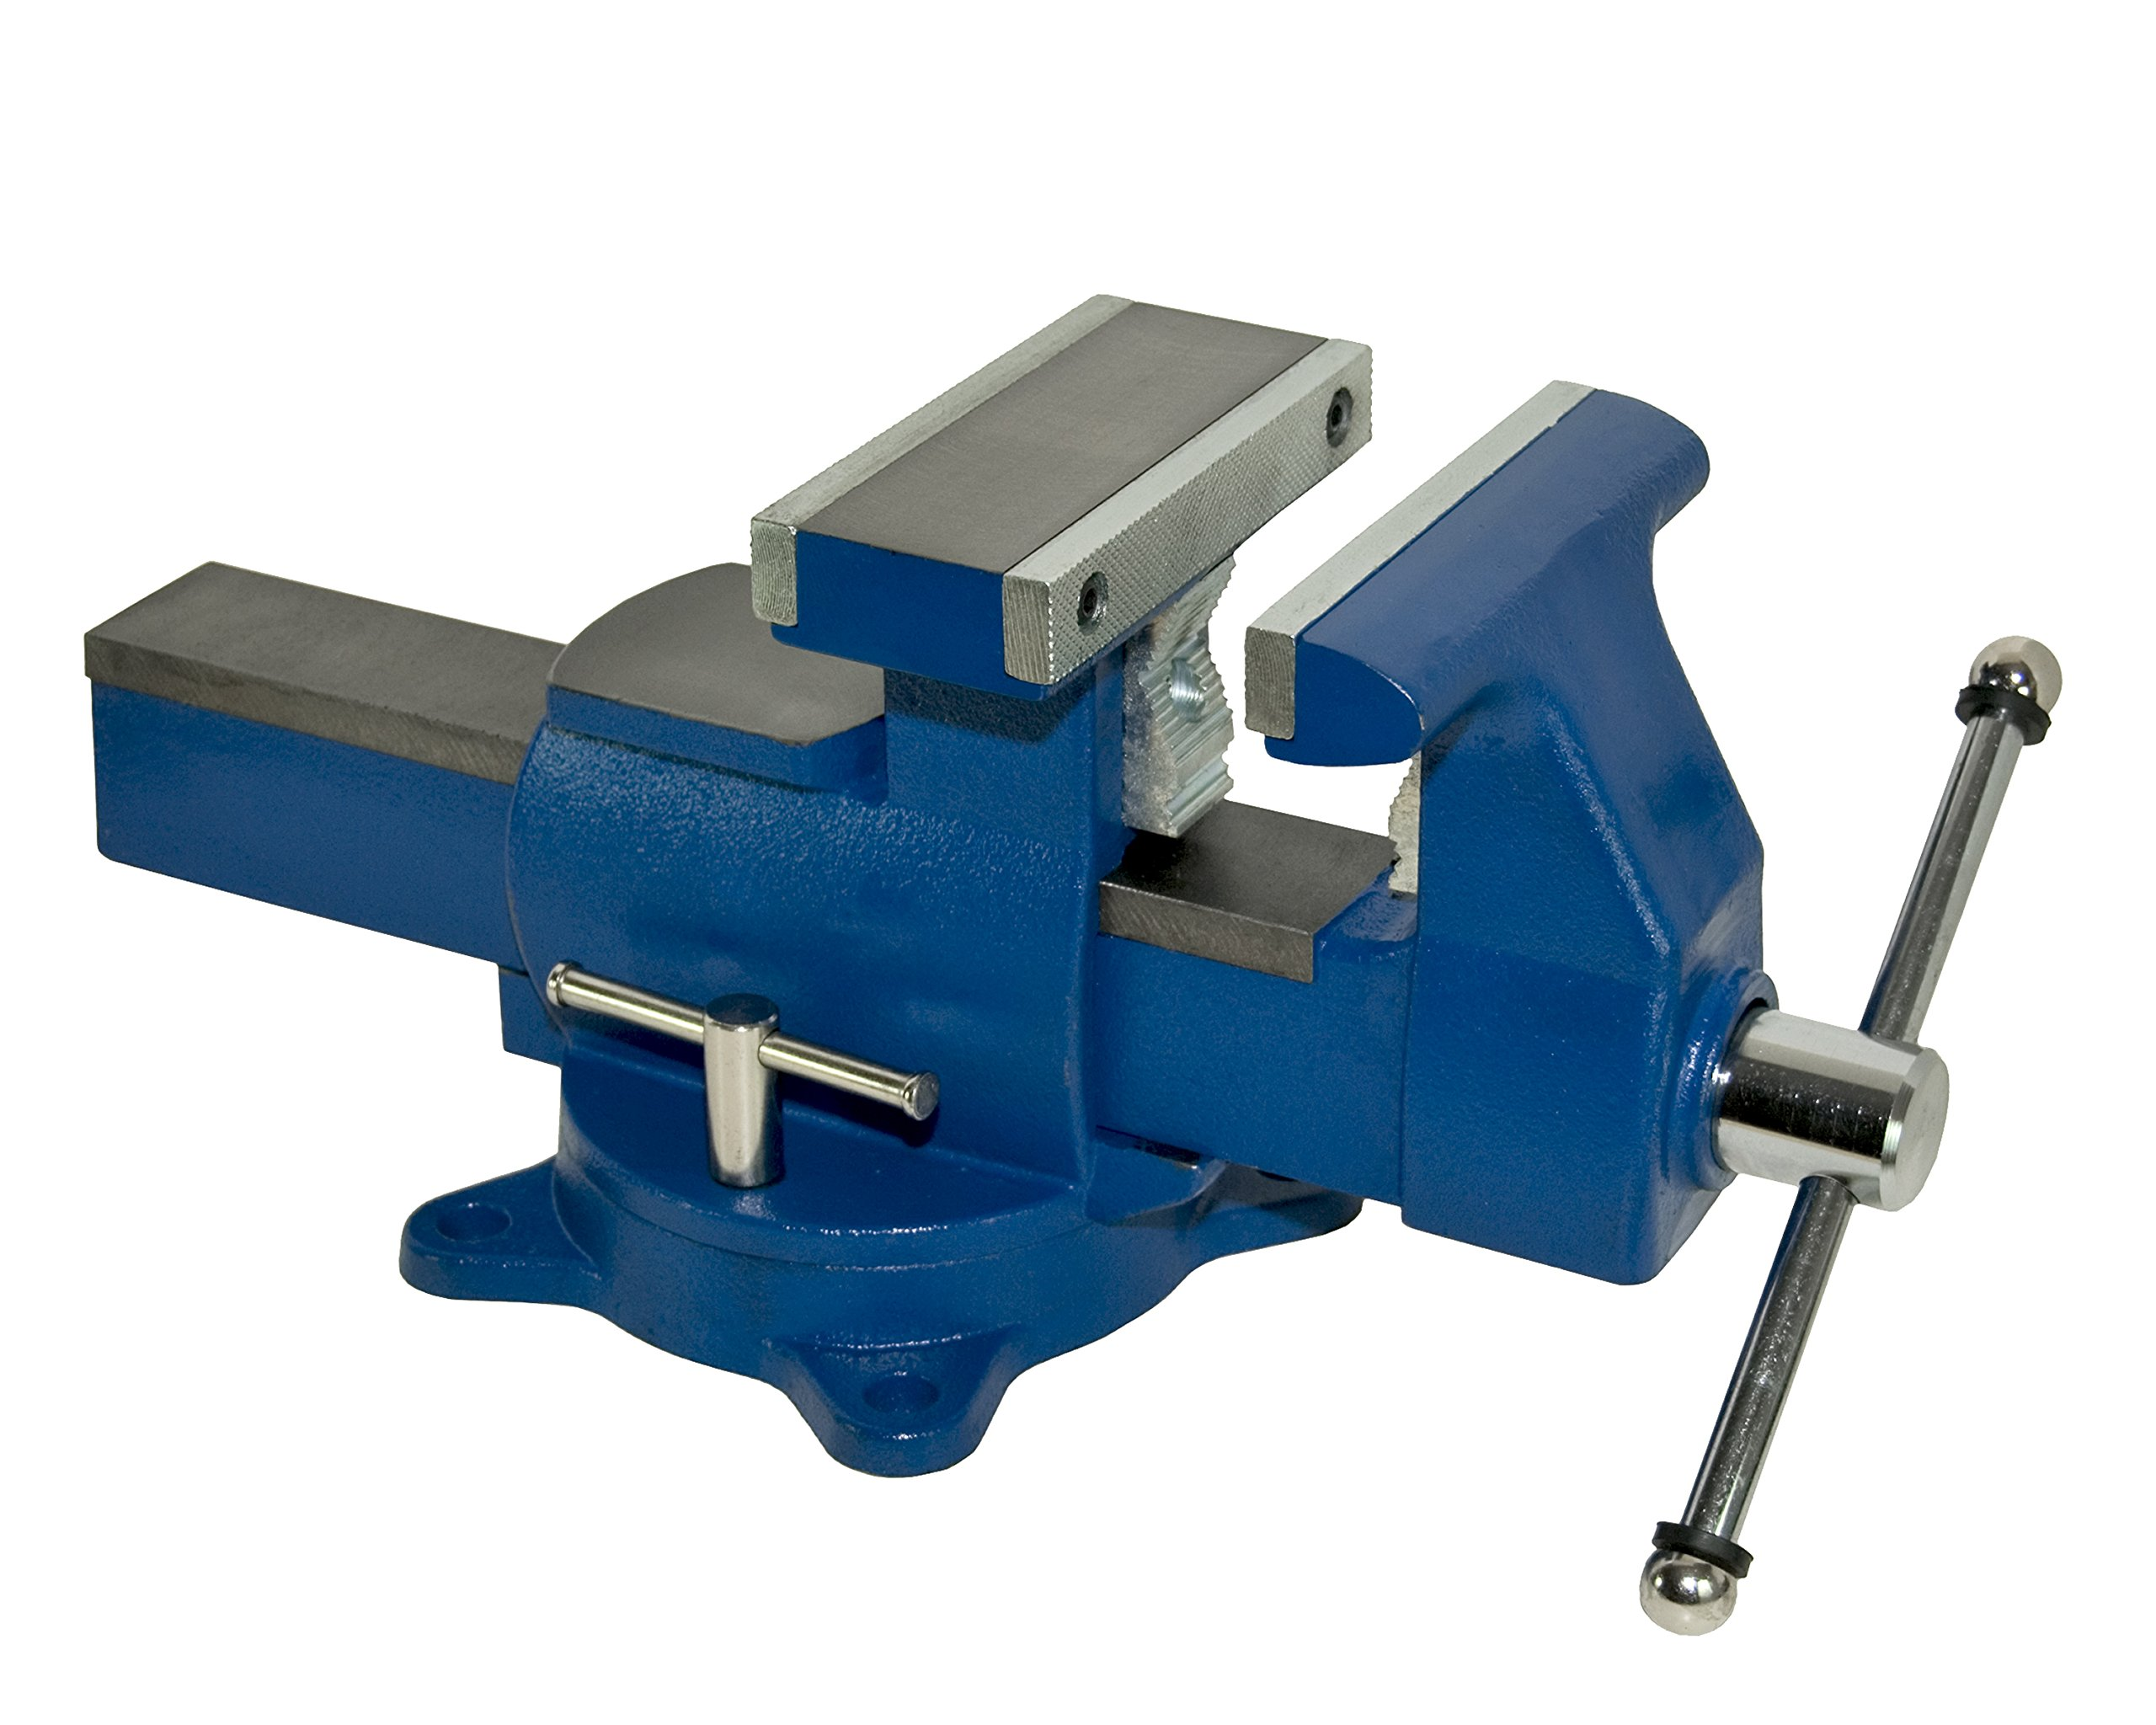 Yost Vises 865-DI 6.5'' Heavy Duty Reversible Bench Vise Made in USA